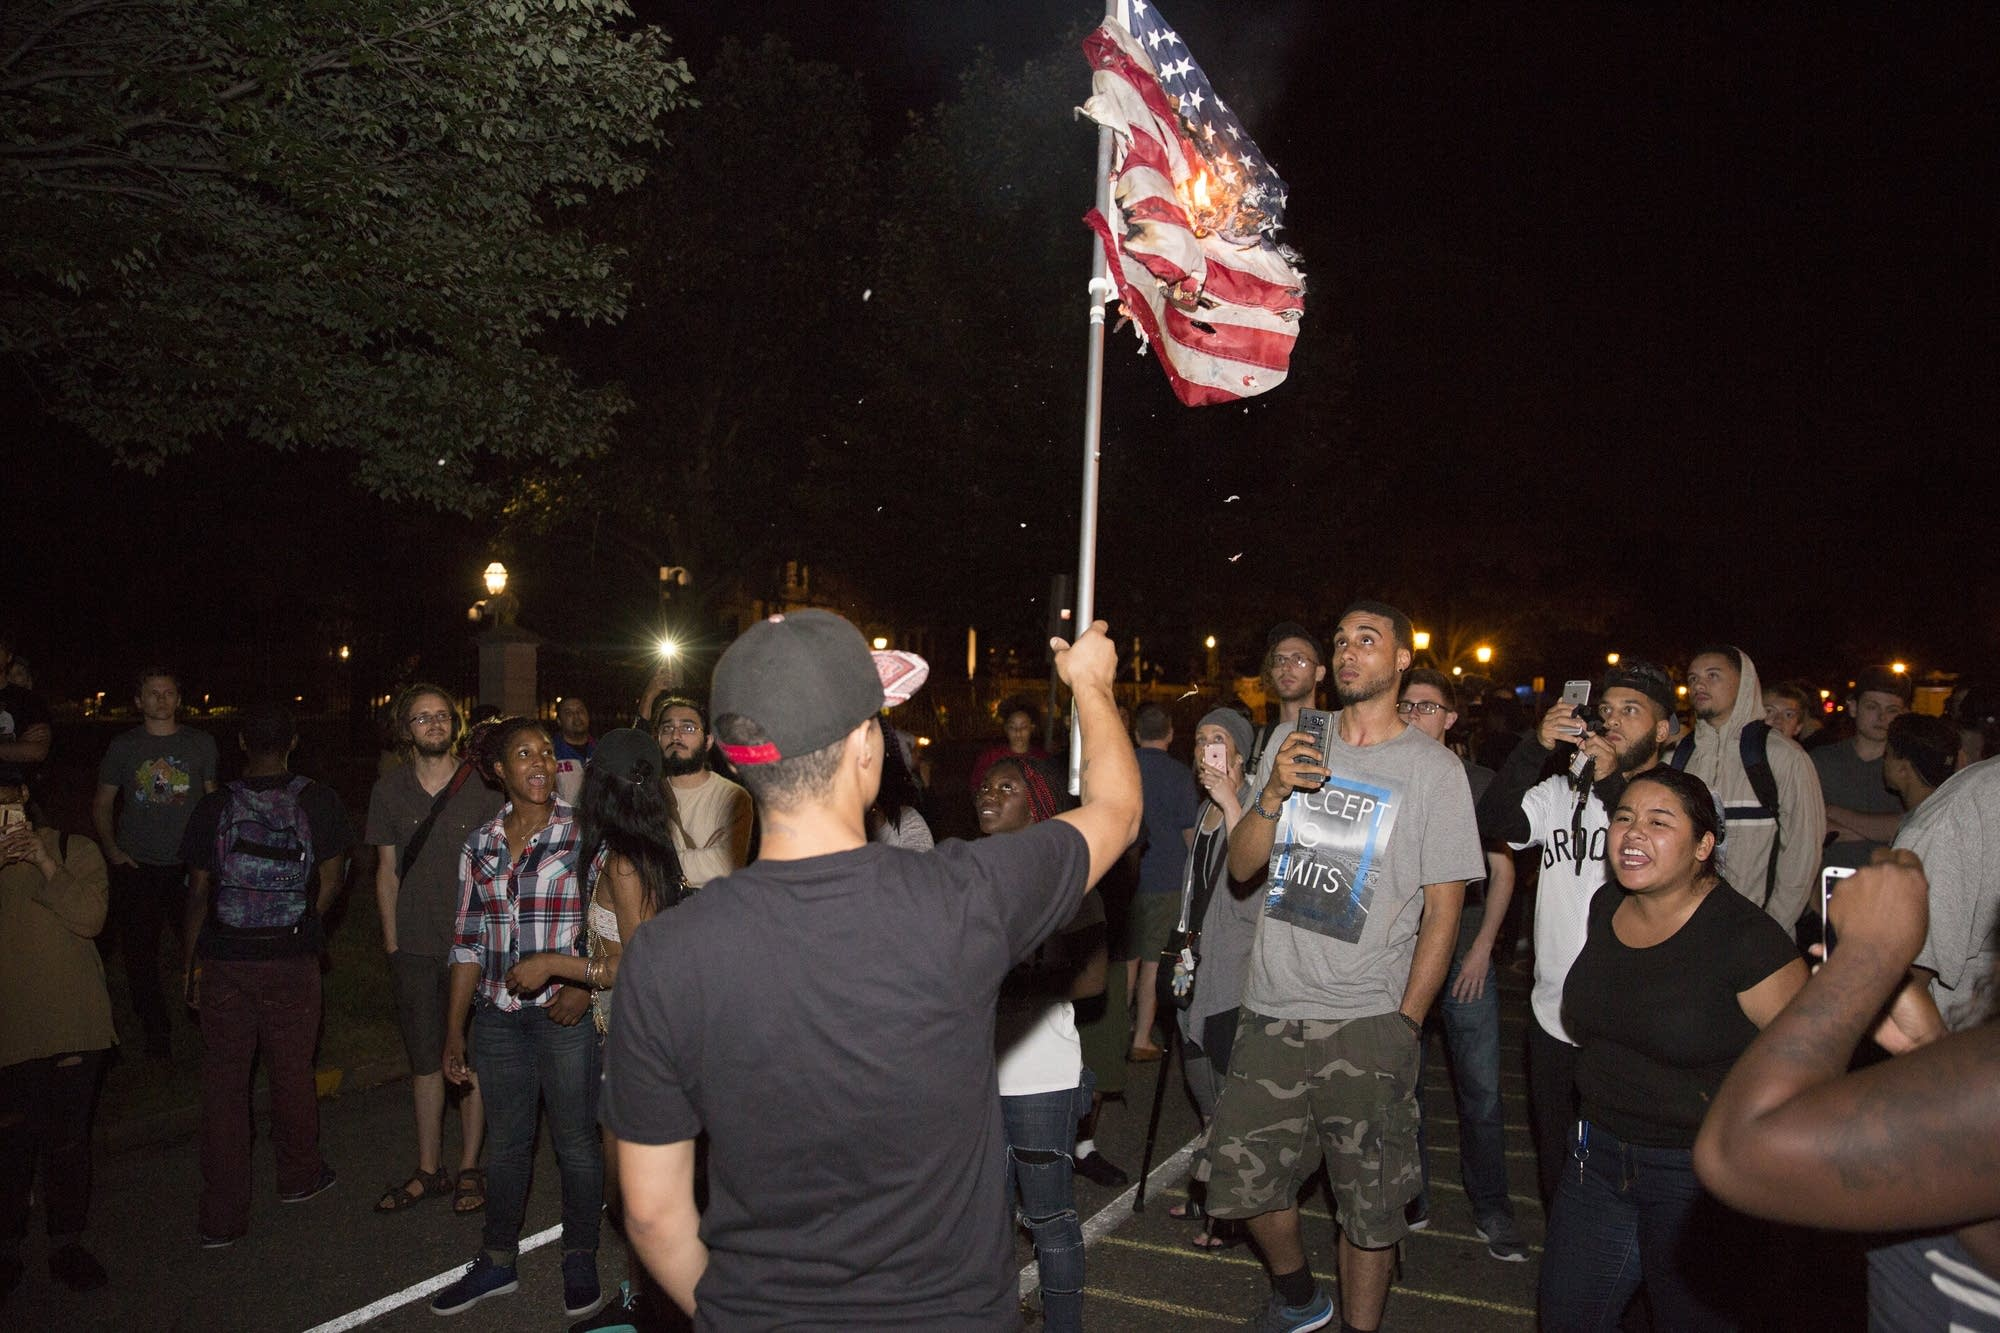 A protester held up a burning America flag.